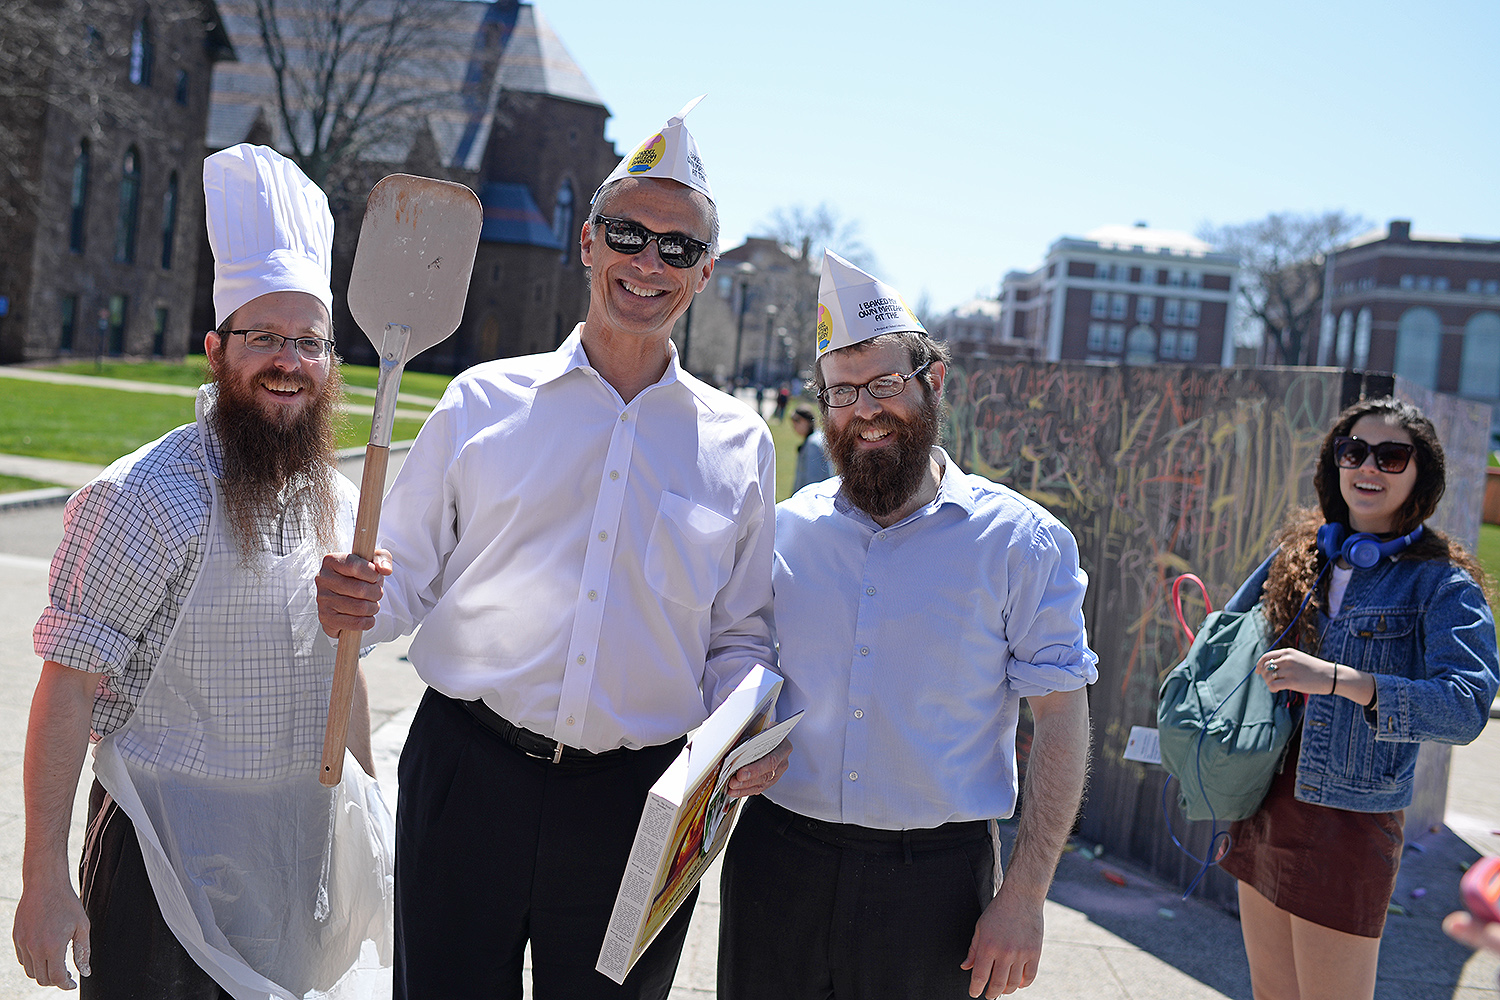 Wesleyan President Michael Roth, center, participated in the matzo bread making.